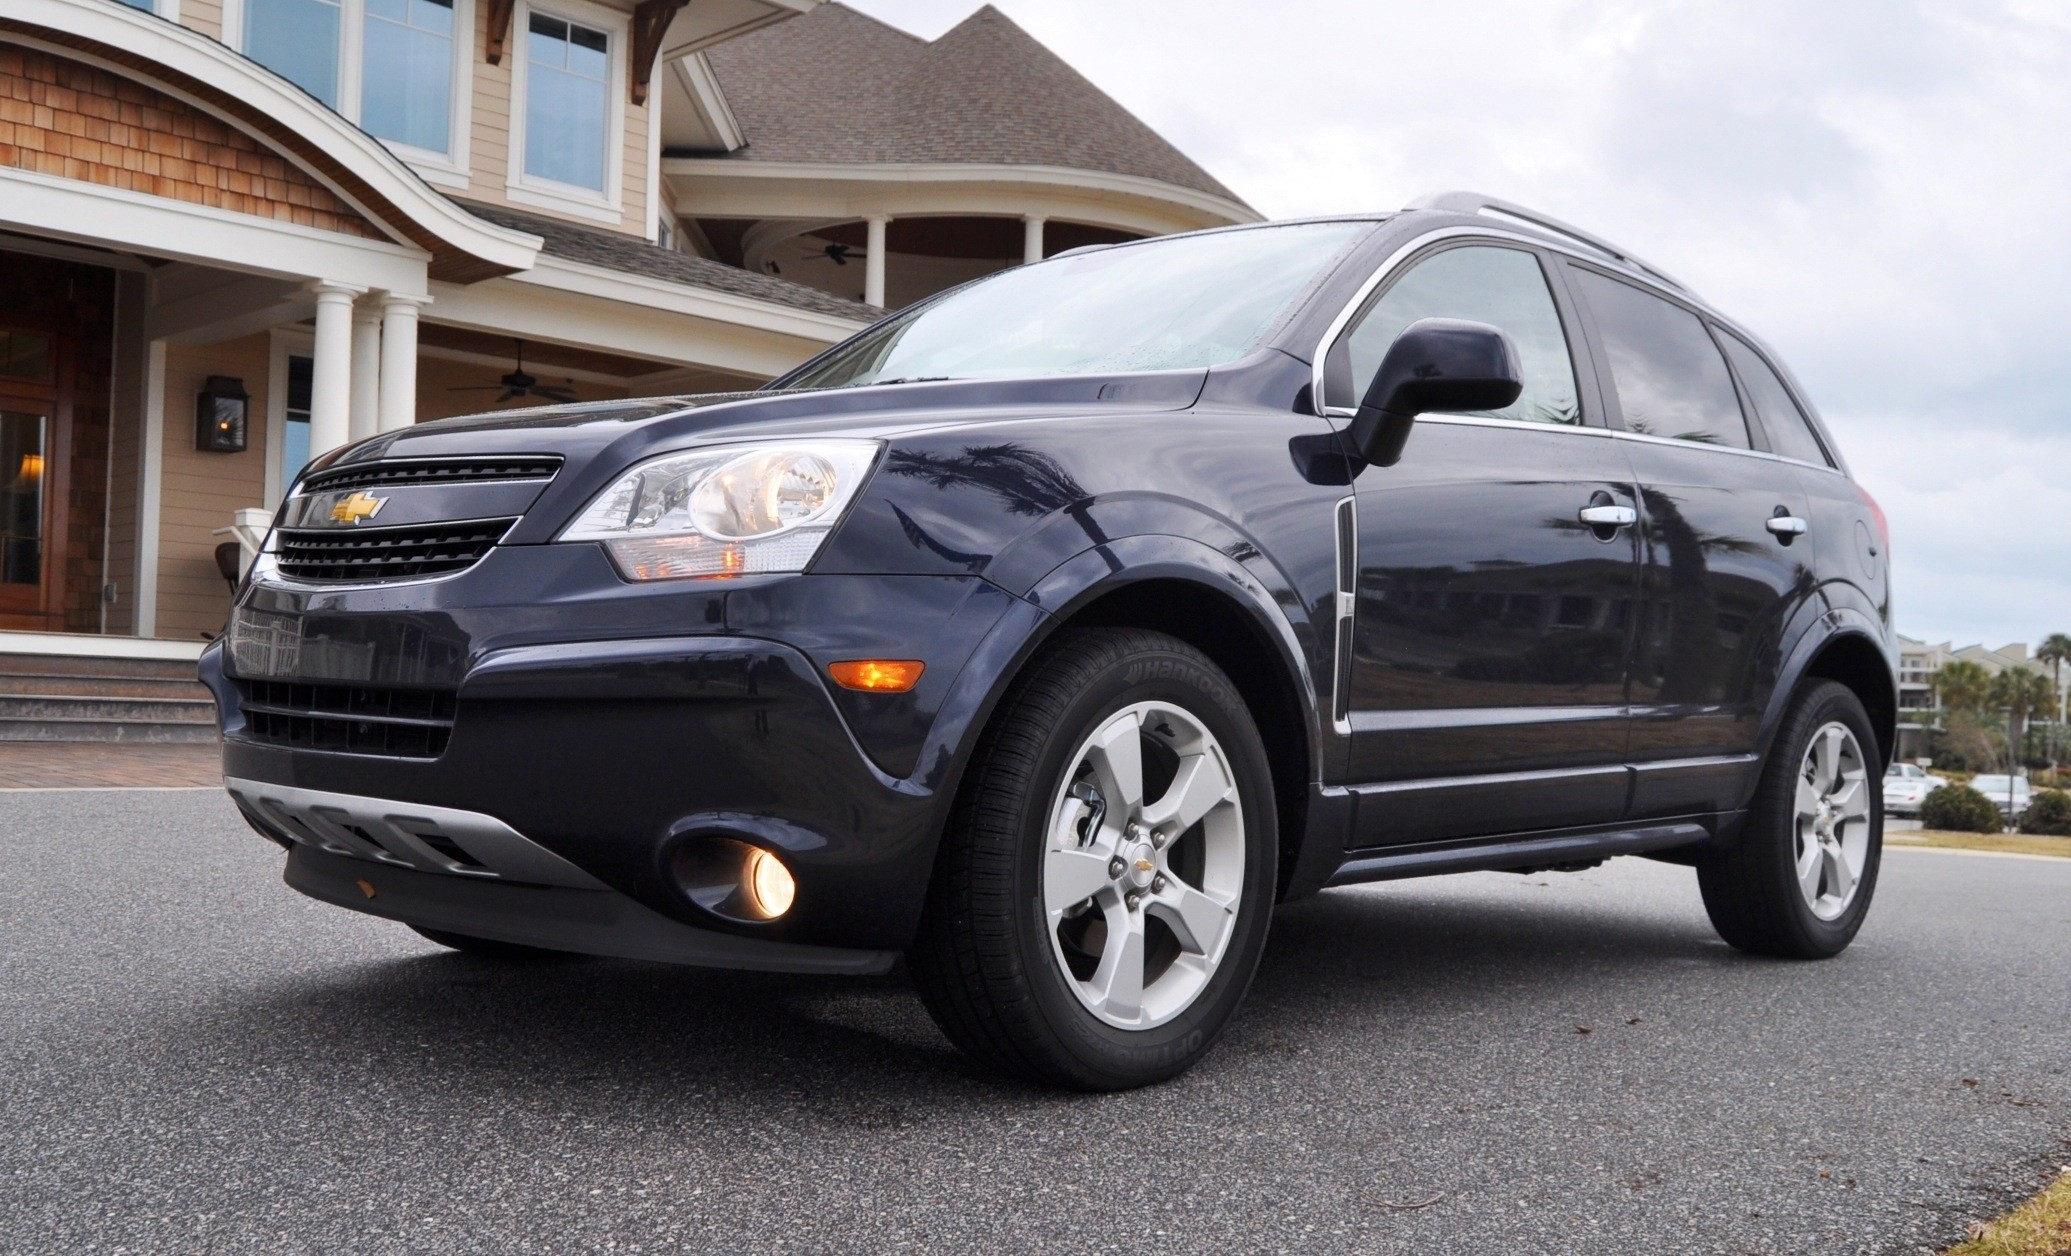 hd road test review 60 photos 2014 chevrolet captiva captiva 2014 road. Cars Review. Best American Auto & Cars Review